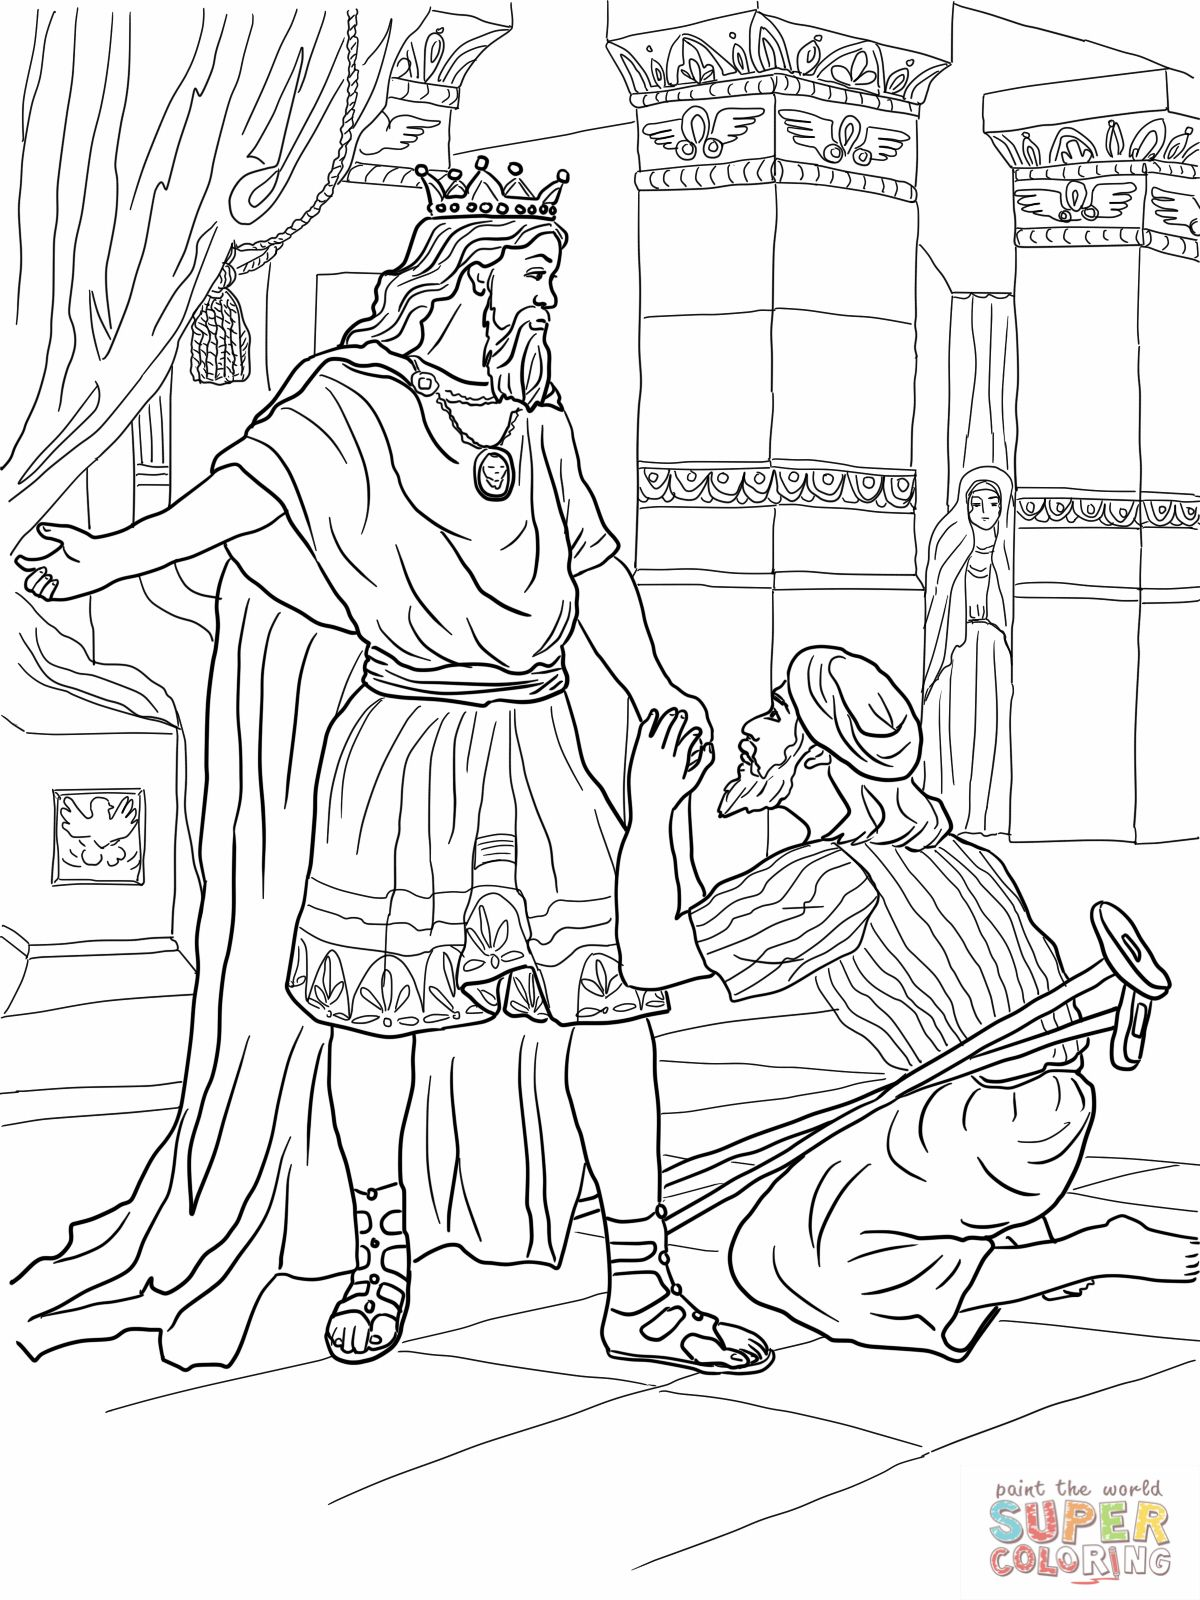 Mephibosheth Coloring Pages David Helps Mephibosheth Coloring